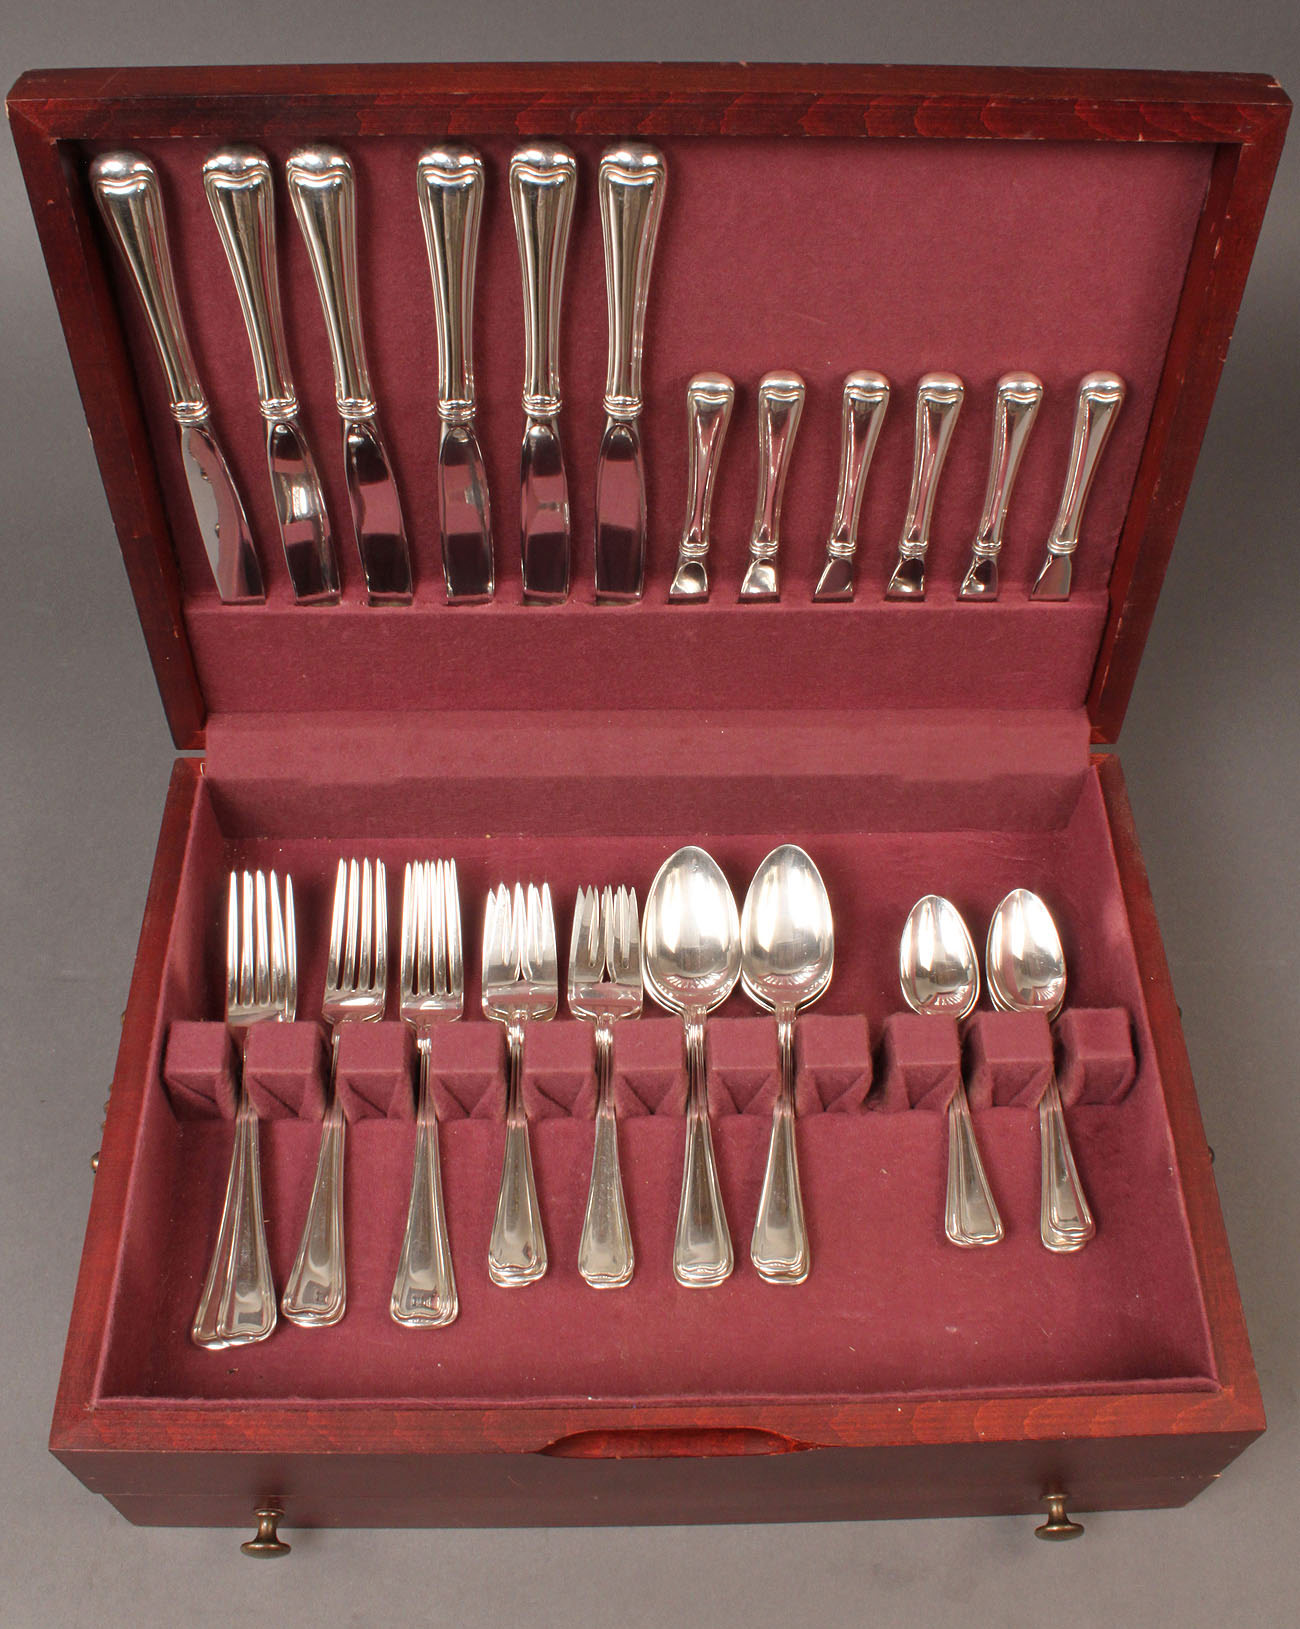 306: Gorham Old French pattern sterling flatware, 36 pc